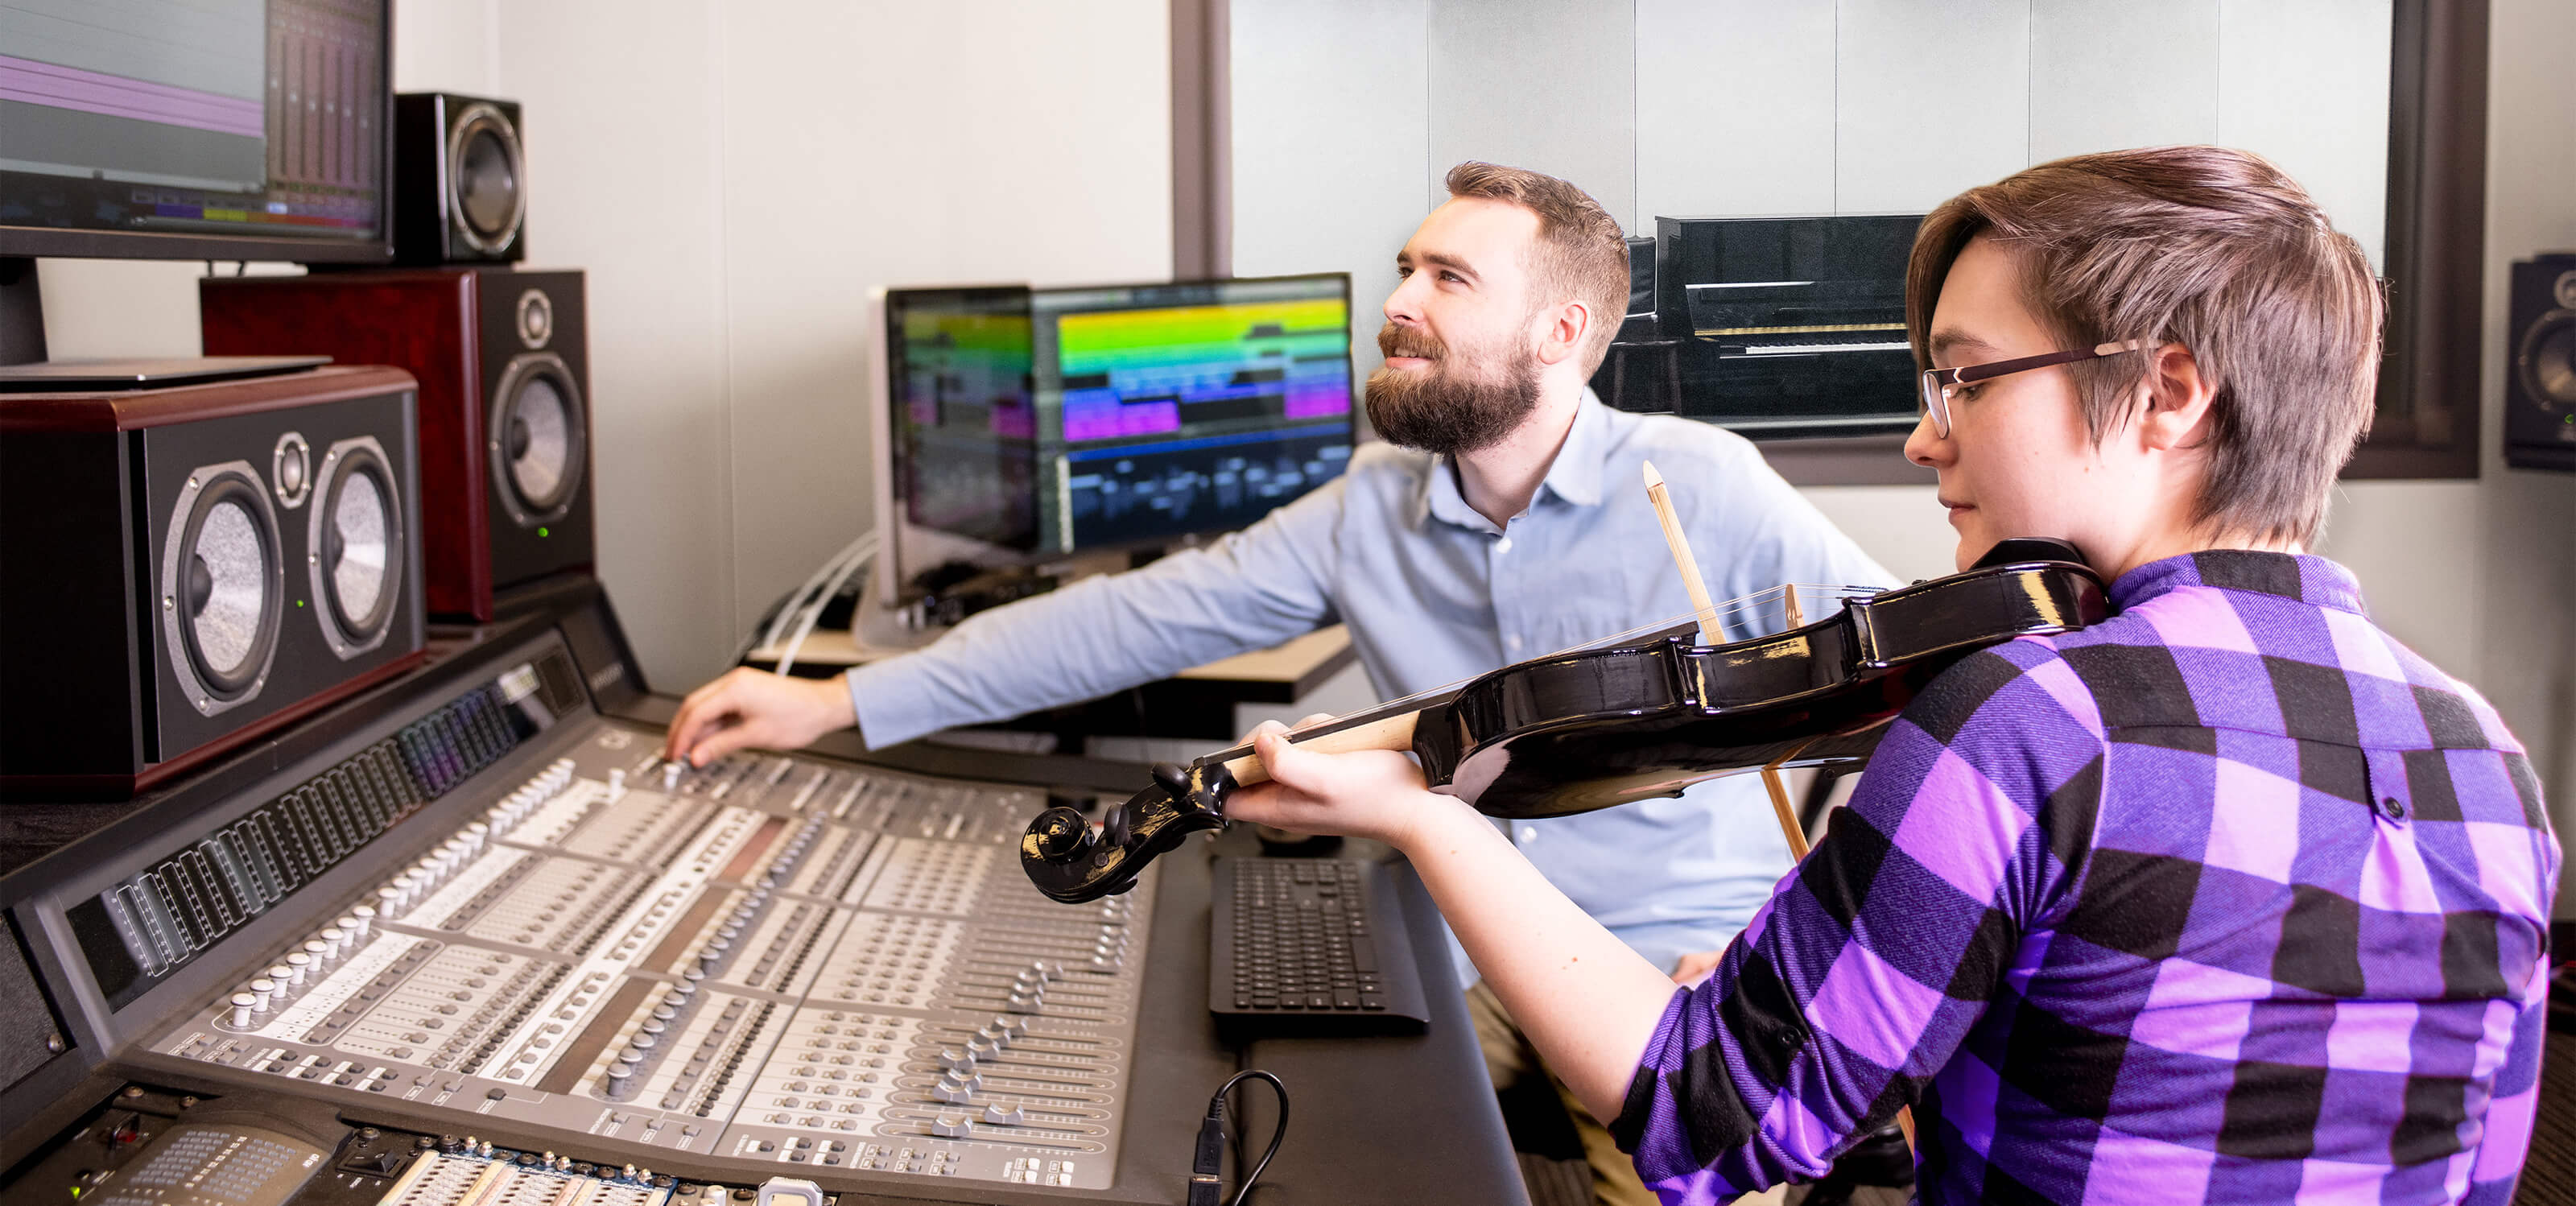 A DigiPen student plays violin next to a large audio mixing board.